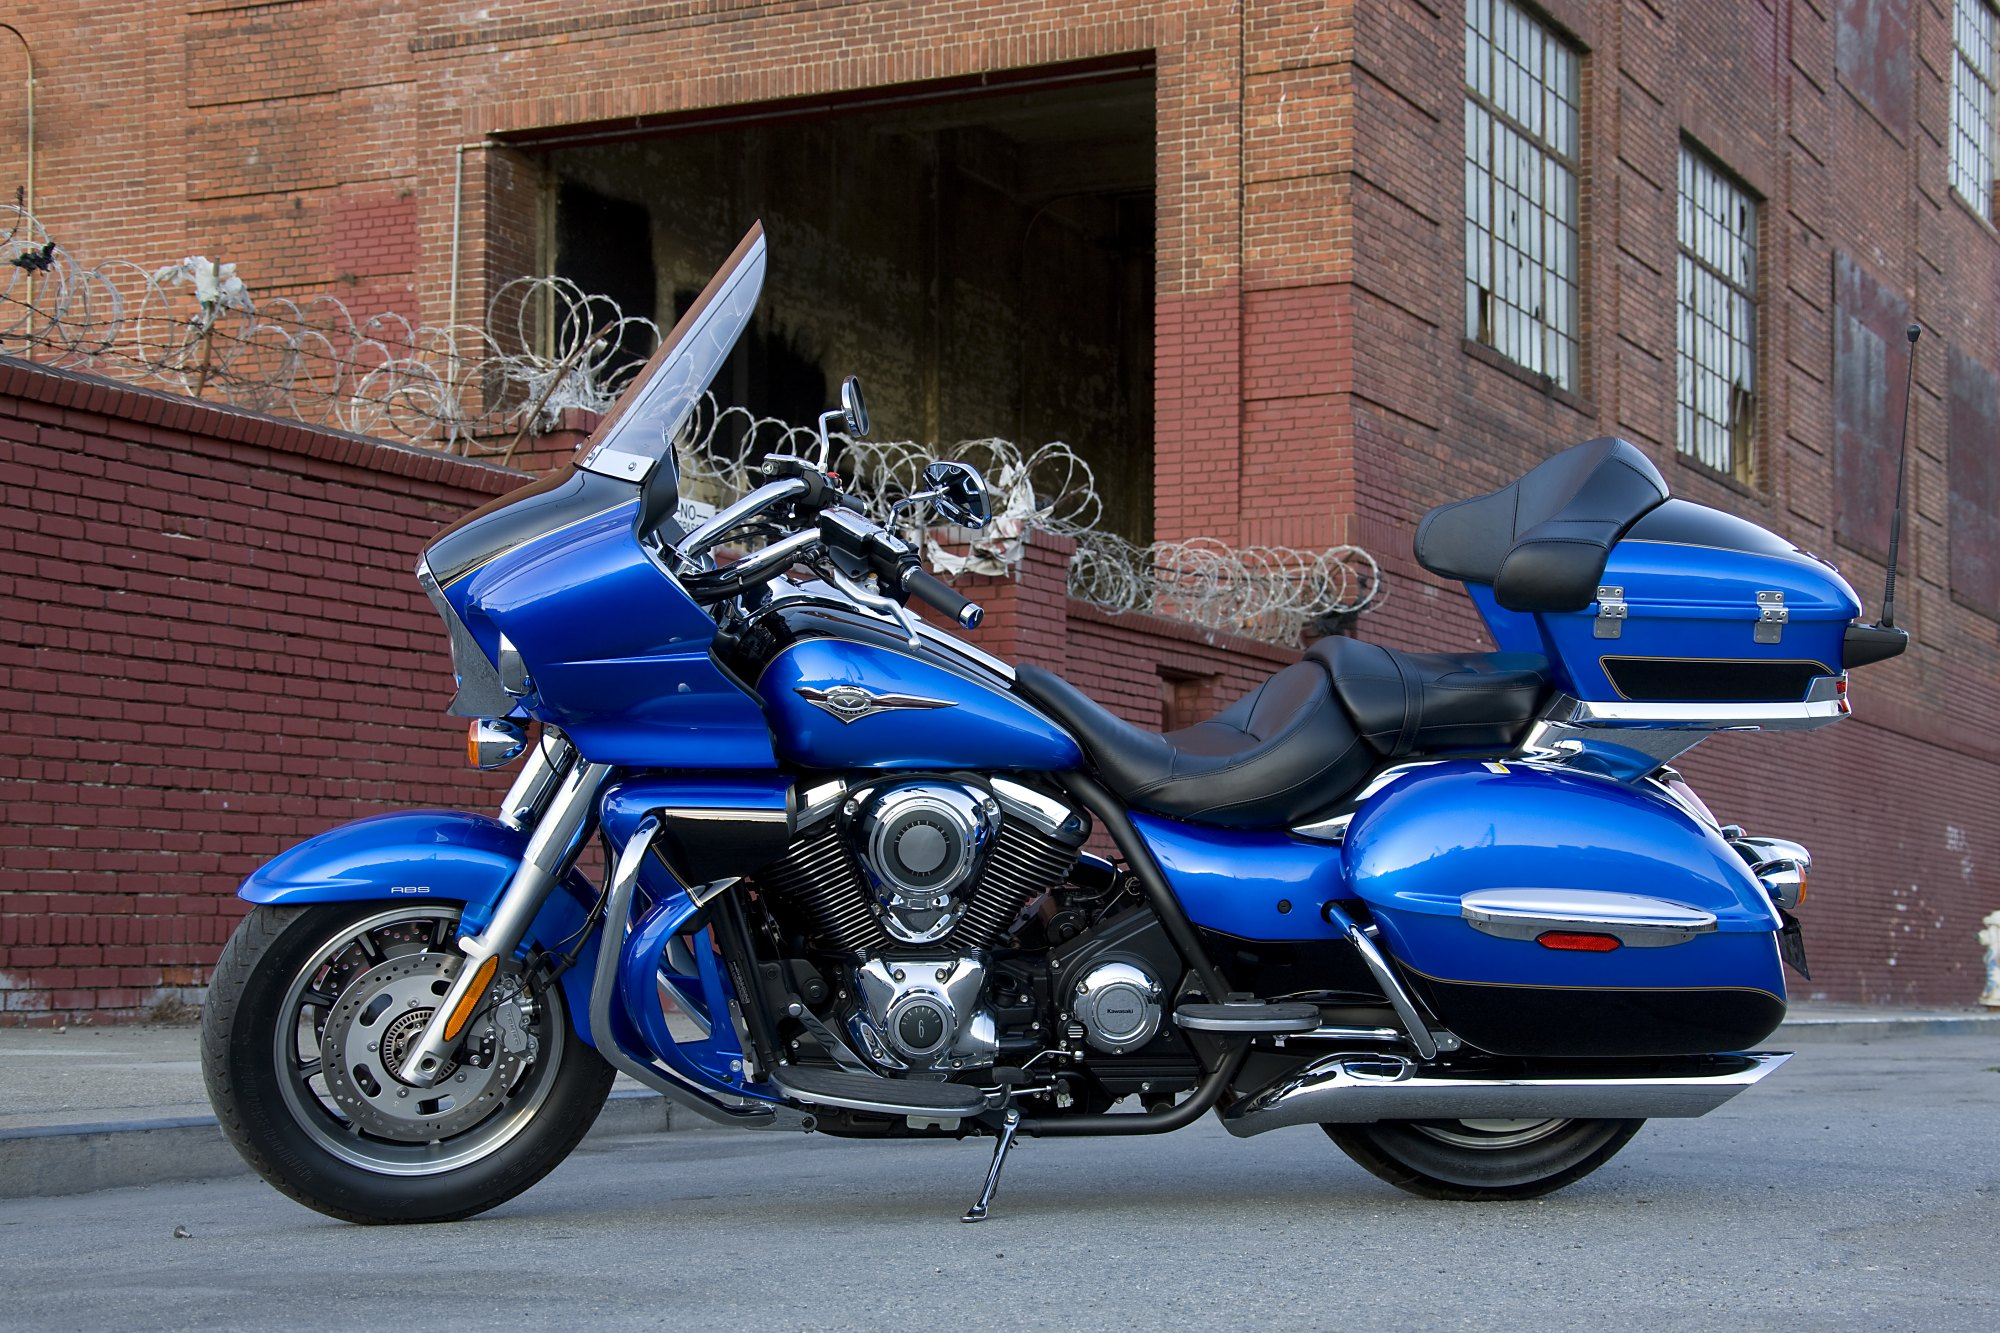 Tremendous 2009 Honda Gold Wing Top Speed Squirreltailoven Fun Painted Chair Ideas Images Squirreltailovenorg